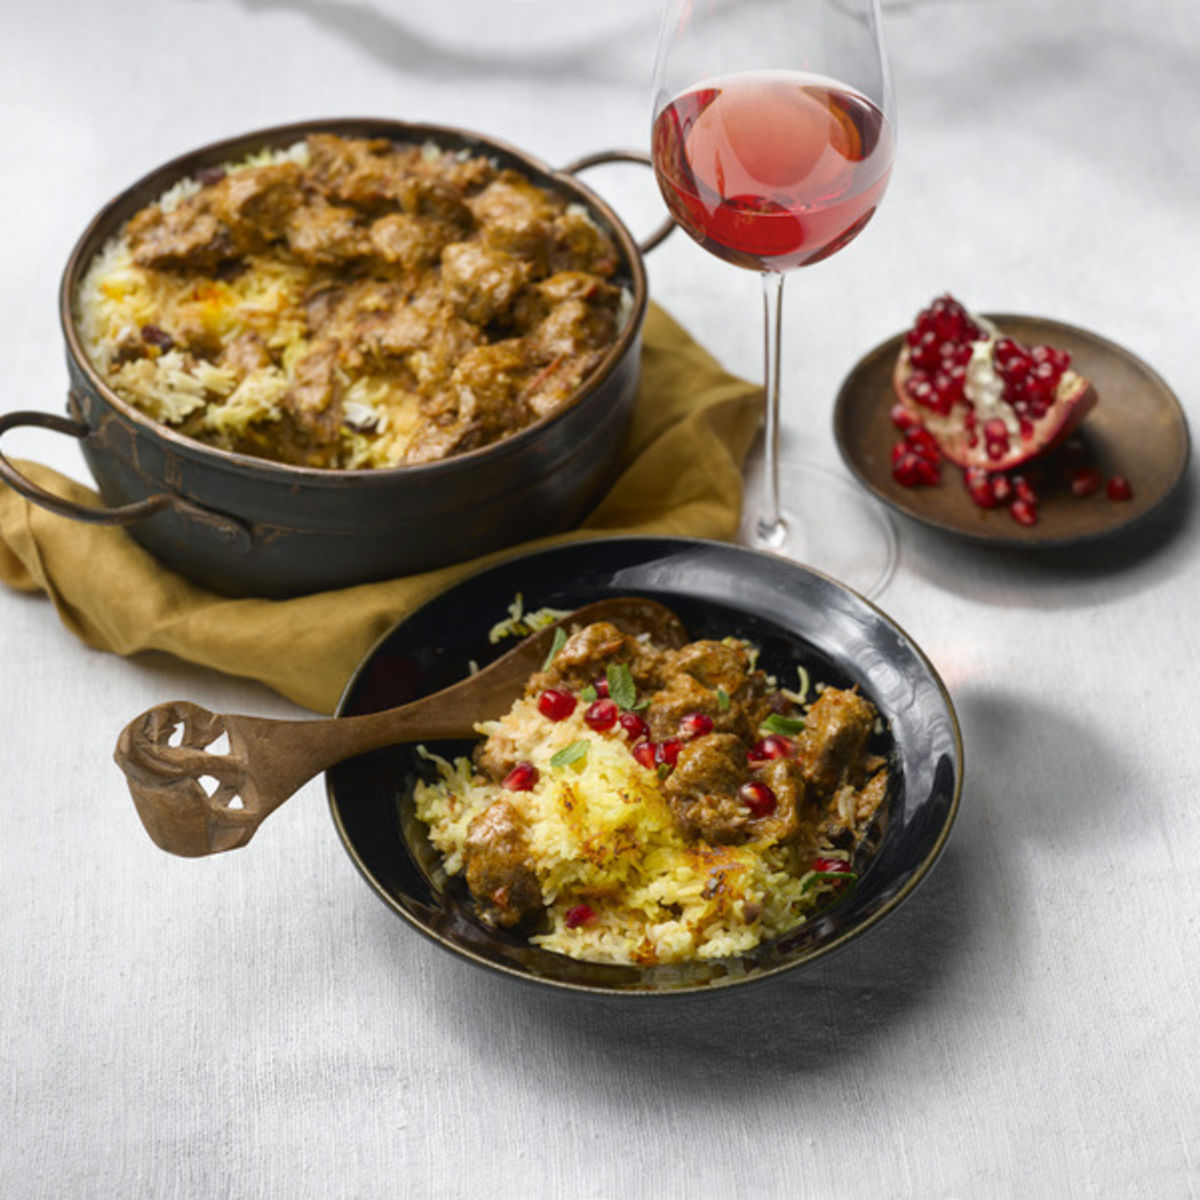 The picture shows the dish lamb biryani and a glass of rosé wine.